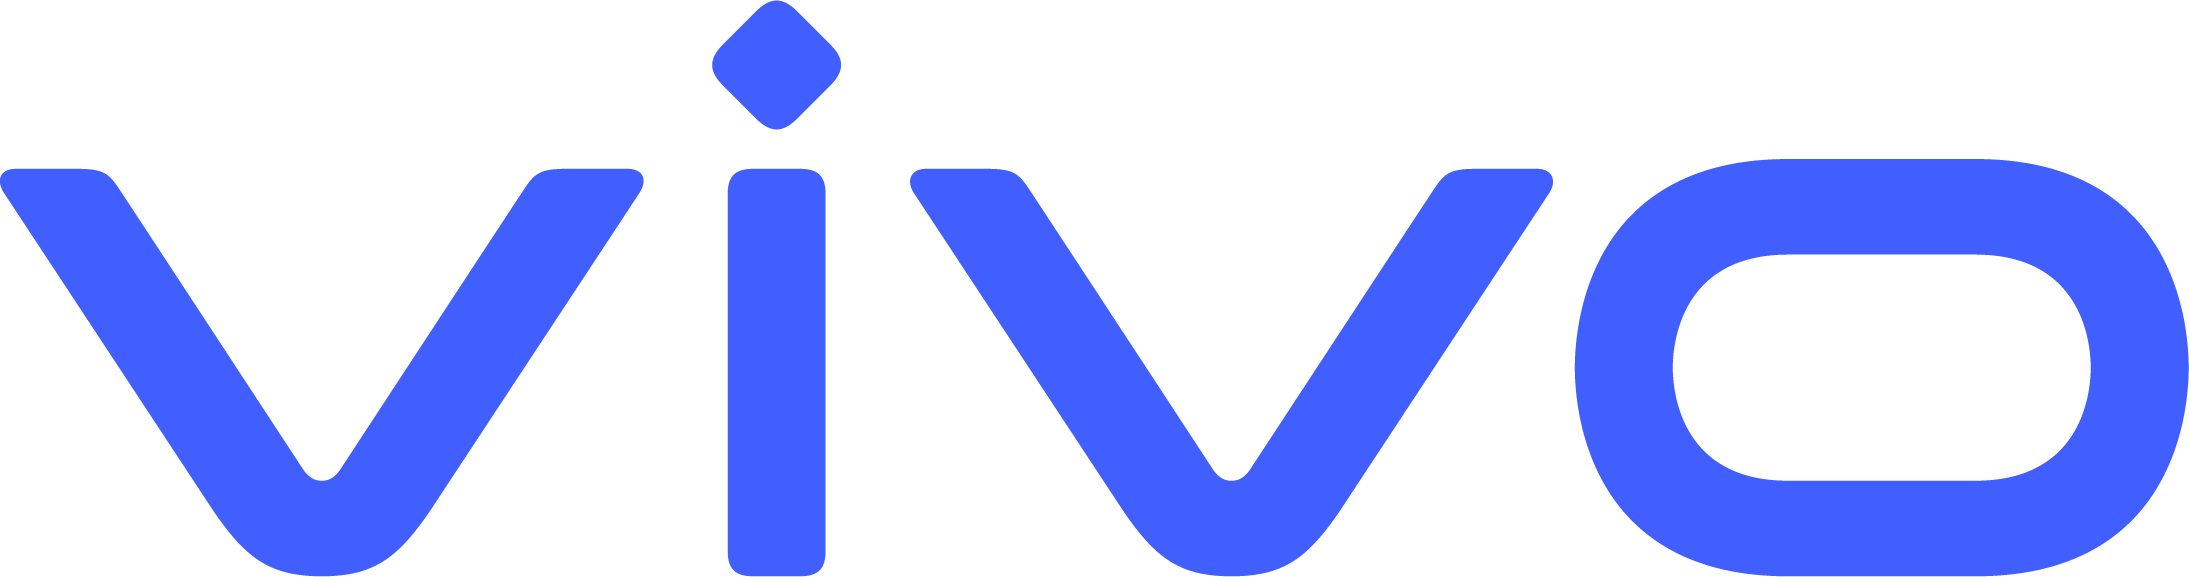 vivo Mobile Communication Co., Ltd Logo